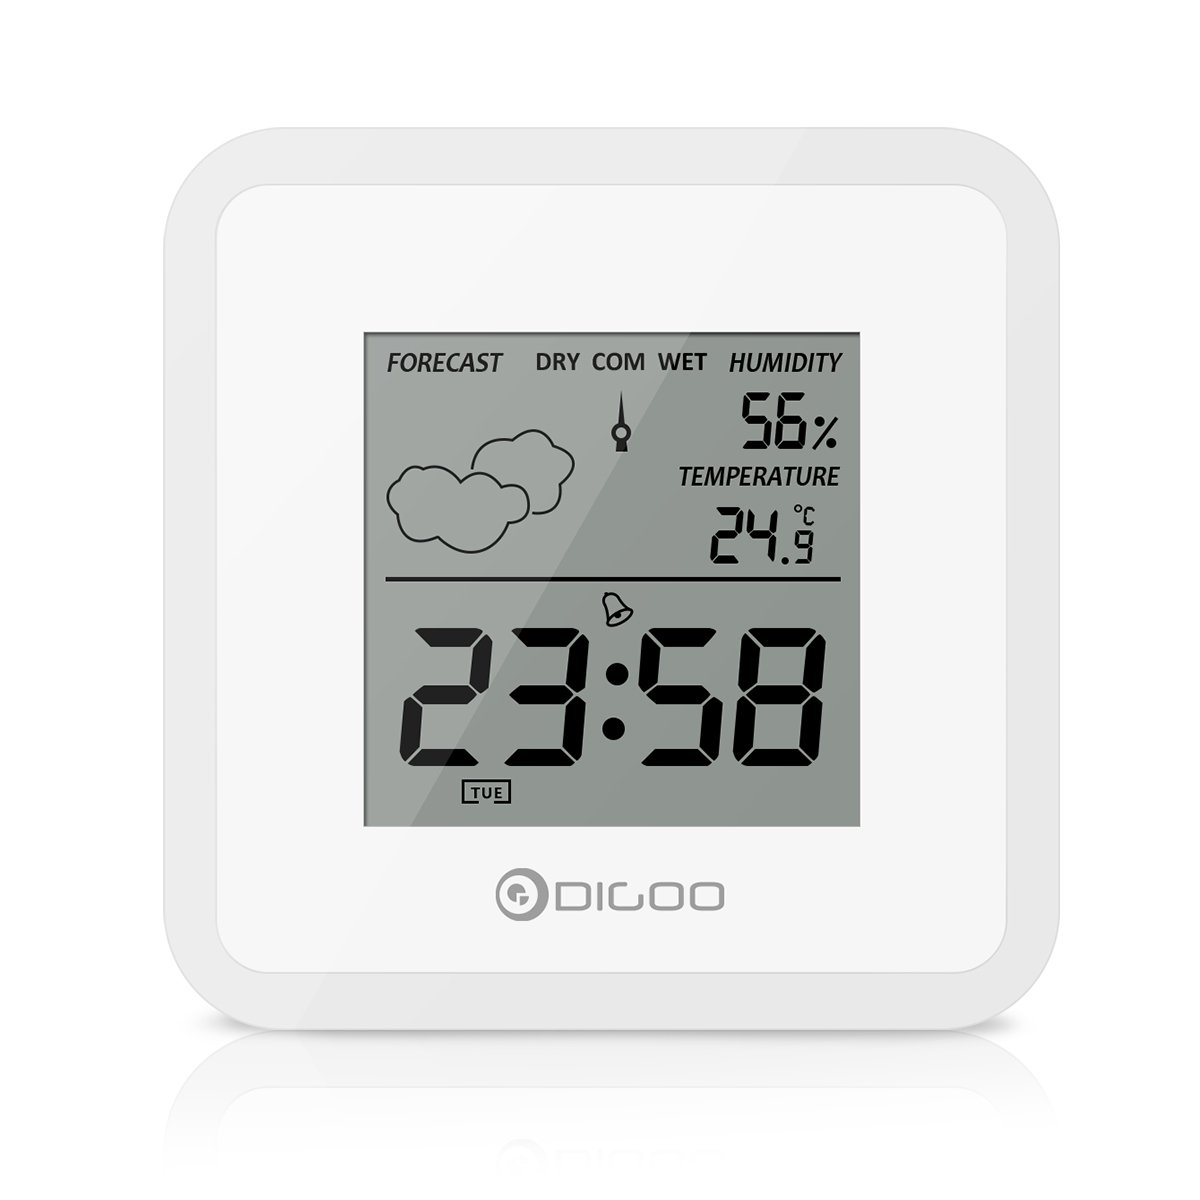 DIGOO DG-FC25 Indoor Thermometer, Temperature Monitor Hygrometer Sensor Alarm clock Weather Forecast, Home Mini Digital Alarm Clock Black Viceirye DIGOOWuulihuiFR11